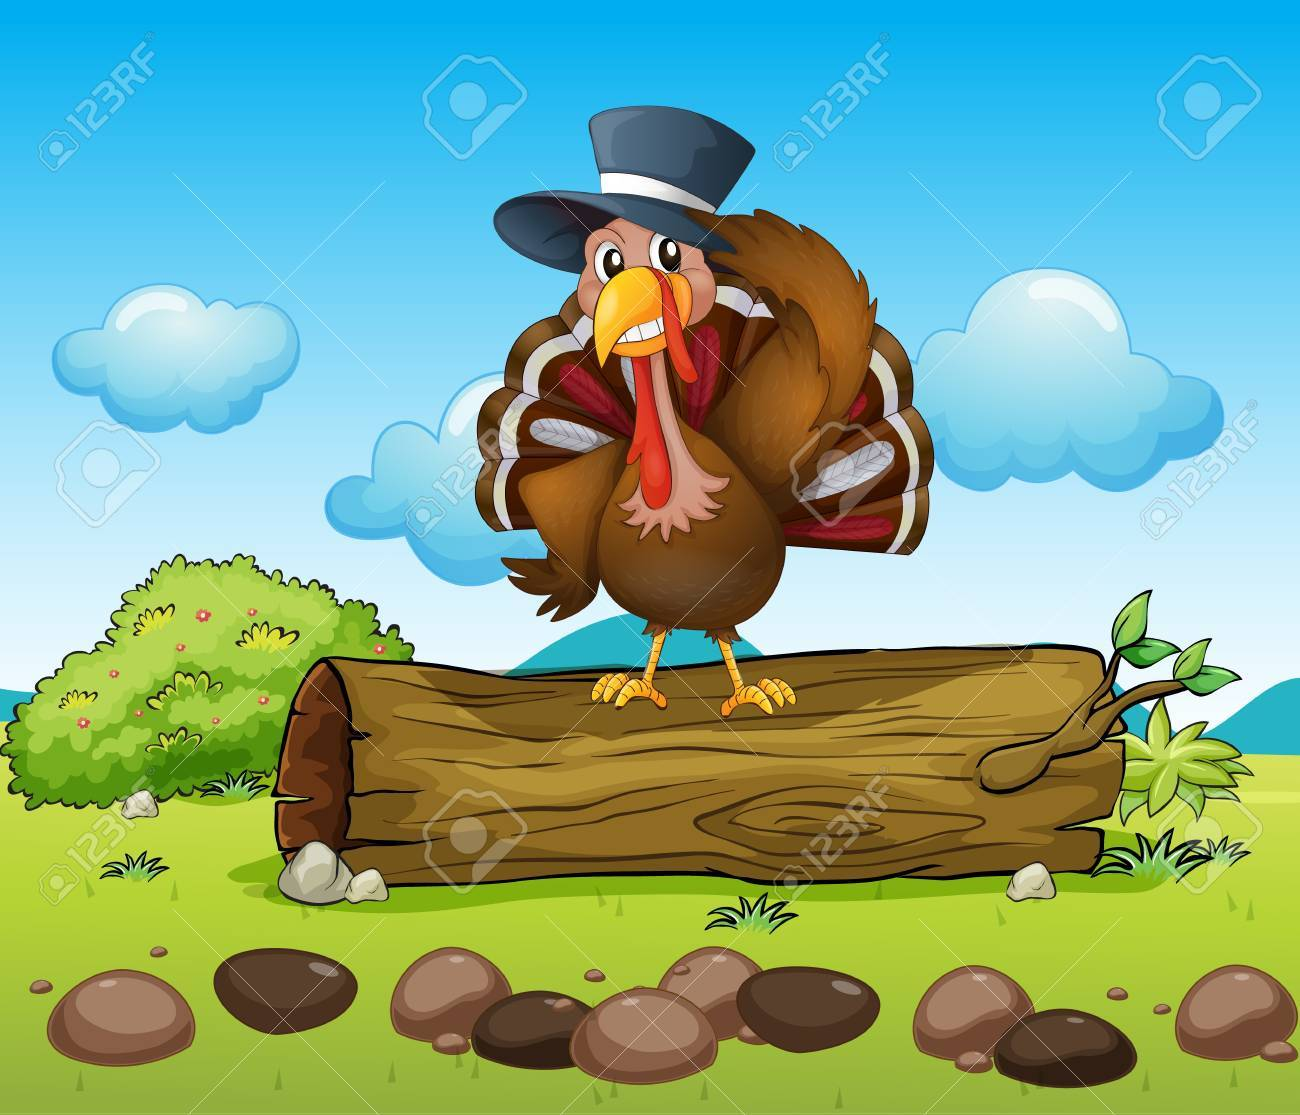 Illustration of a turkey above a log Stock Vector - 17889653